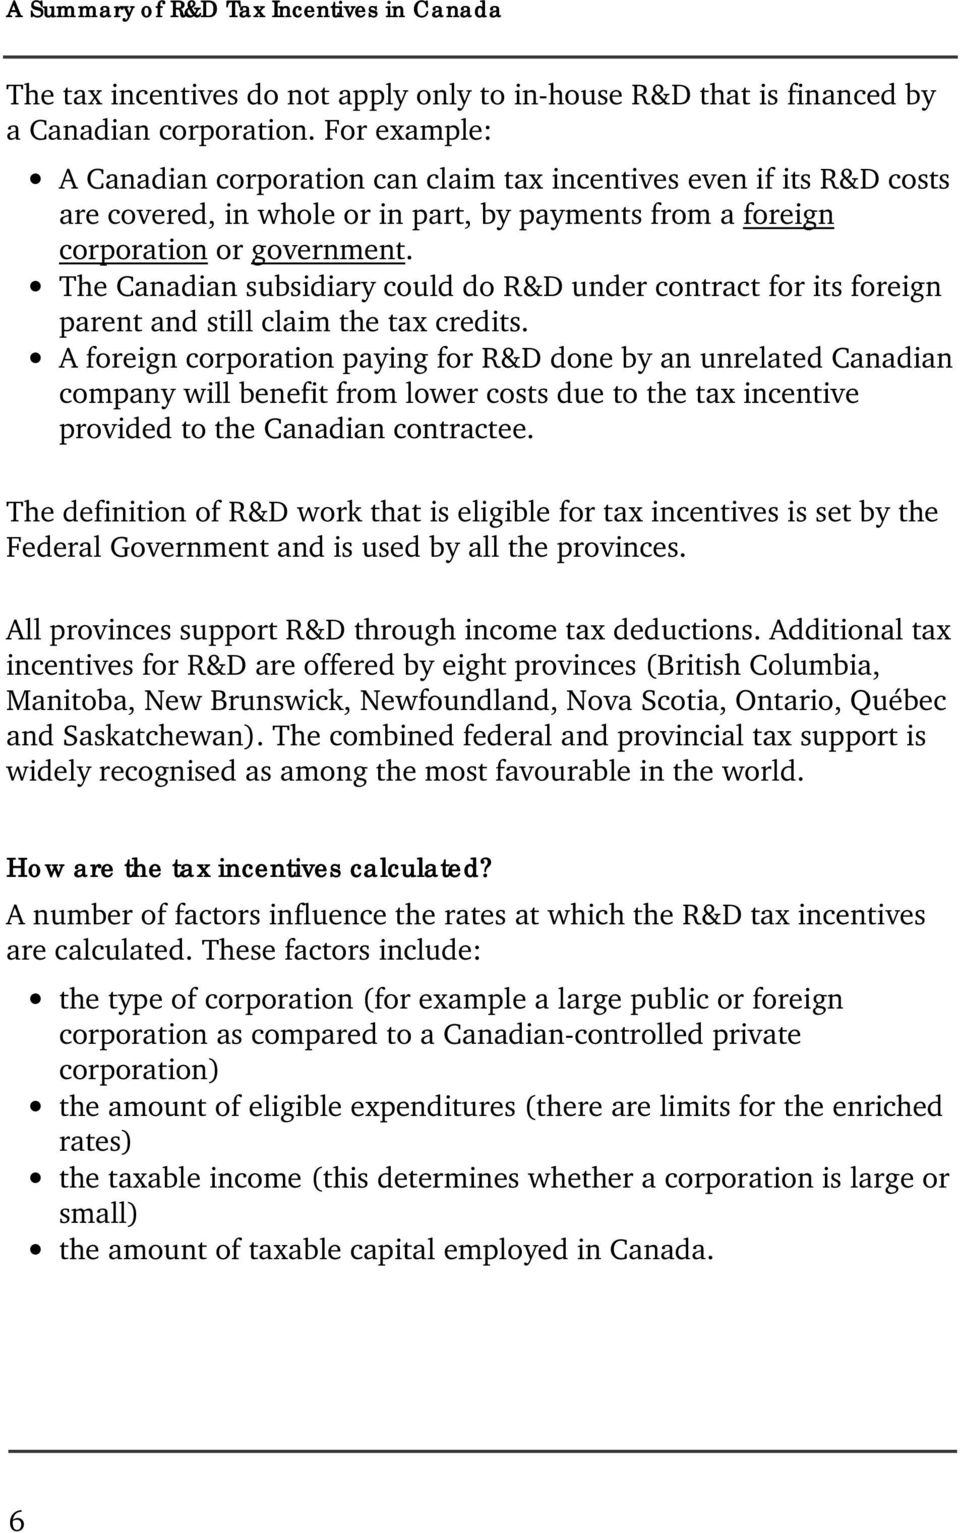 The Canadian subsidiary could do R&D under contract for its foreign parent and still claim the tax credits.